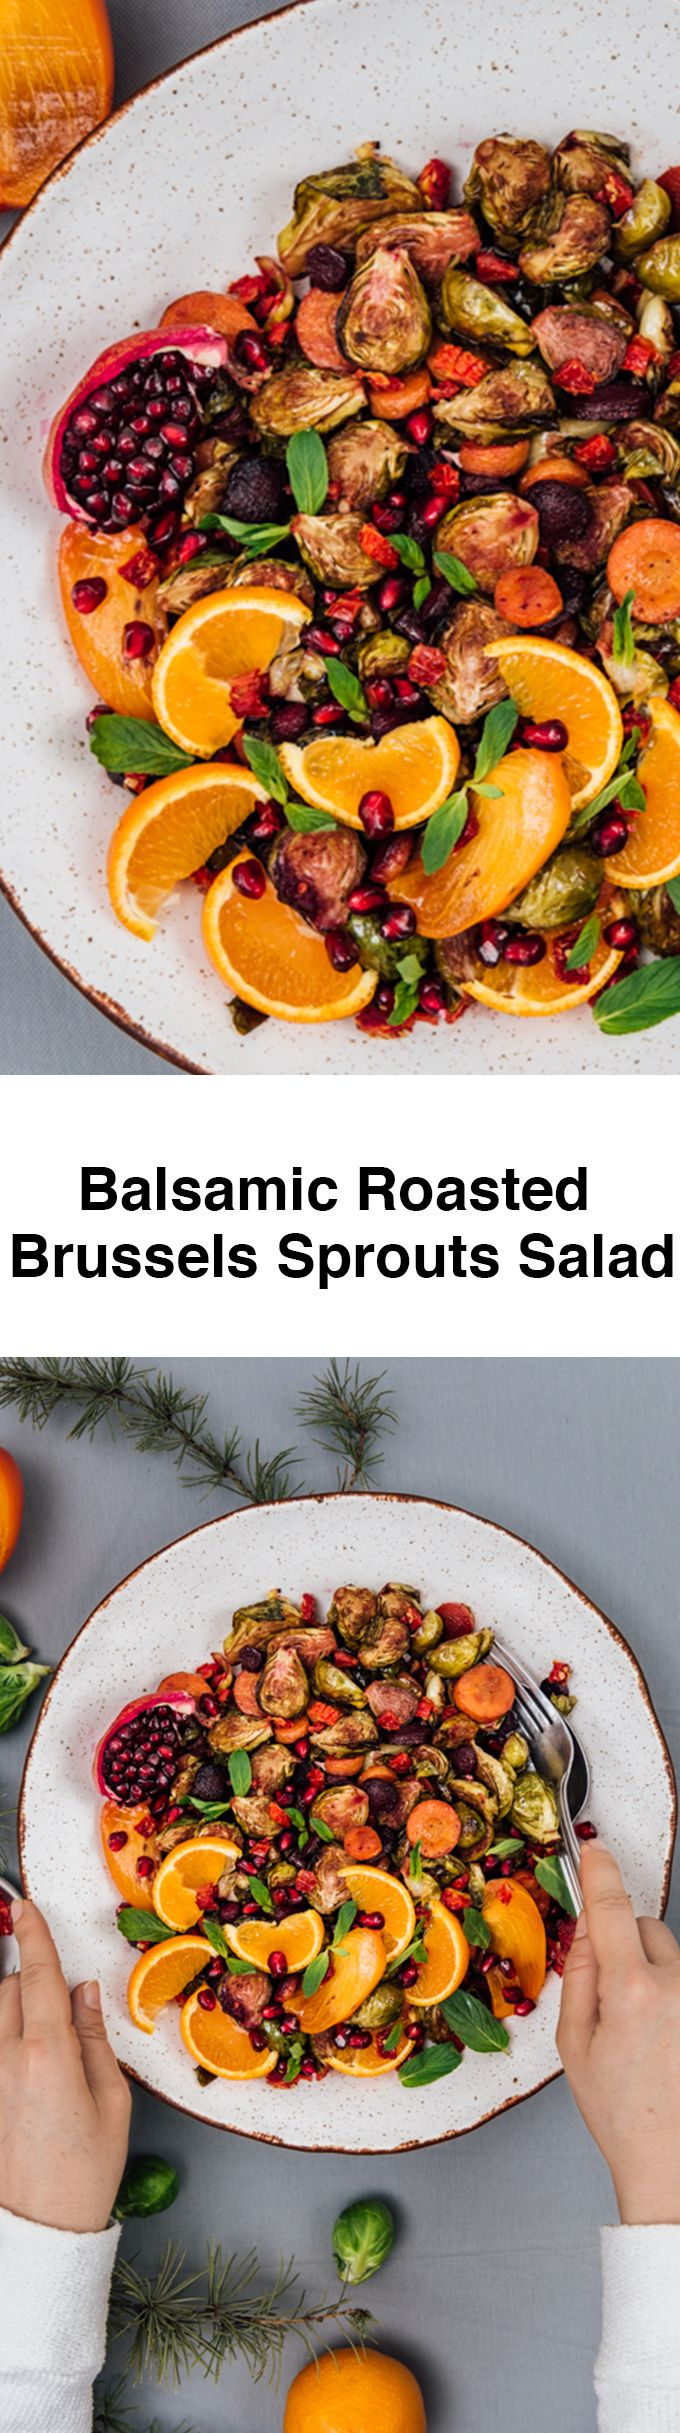 Side dishes are important. More important than main dishes for me. This colorful and flavor-packed Balsamic Roasted Brussels Sprouts Salad was the star of the menu last weekend.